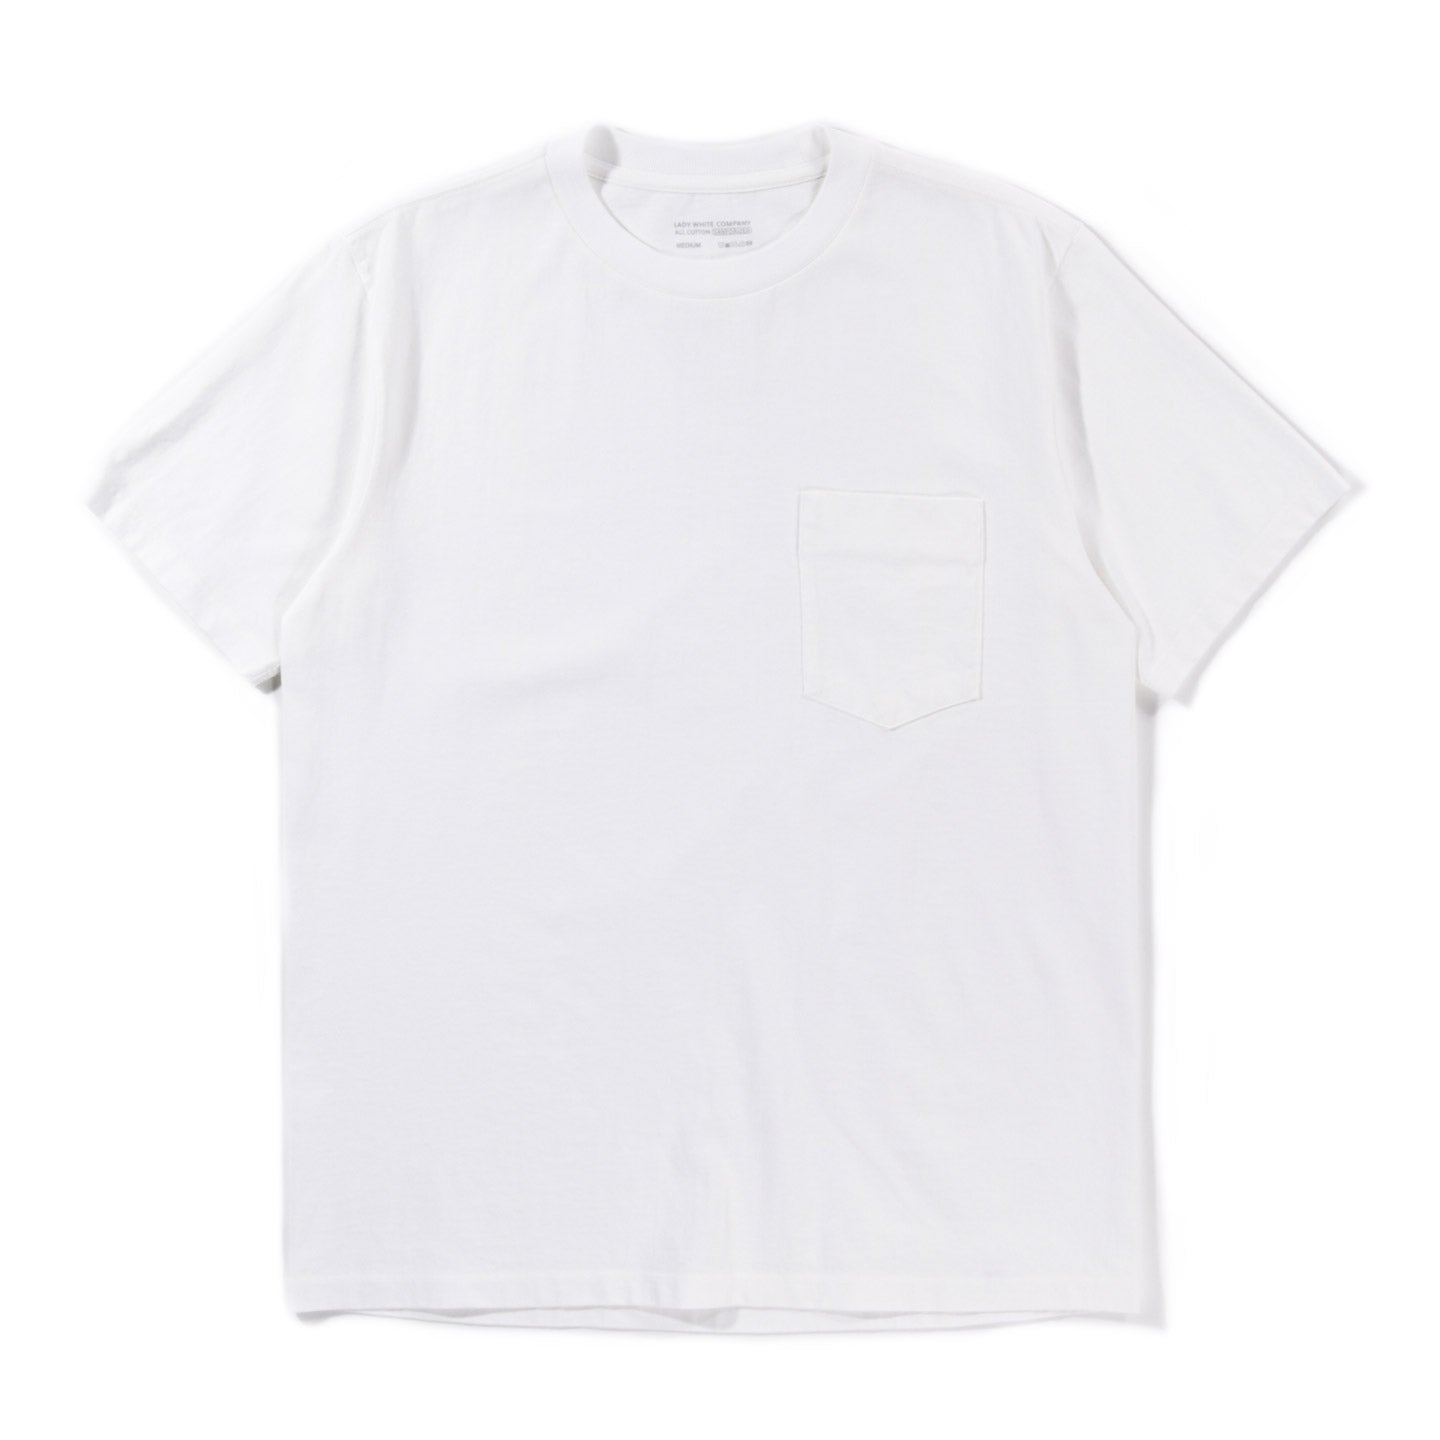 LADY WHITE CO. BALTA POCKET T-SHIRT WHITE